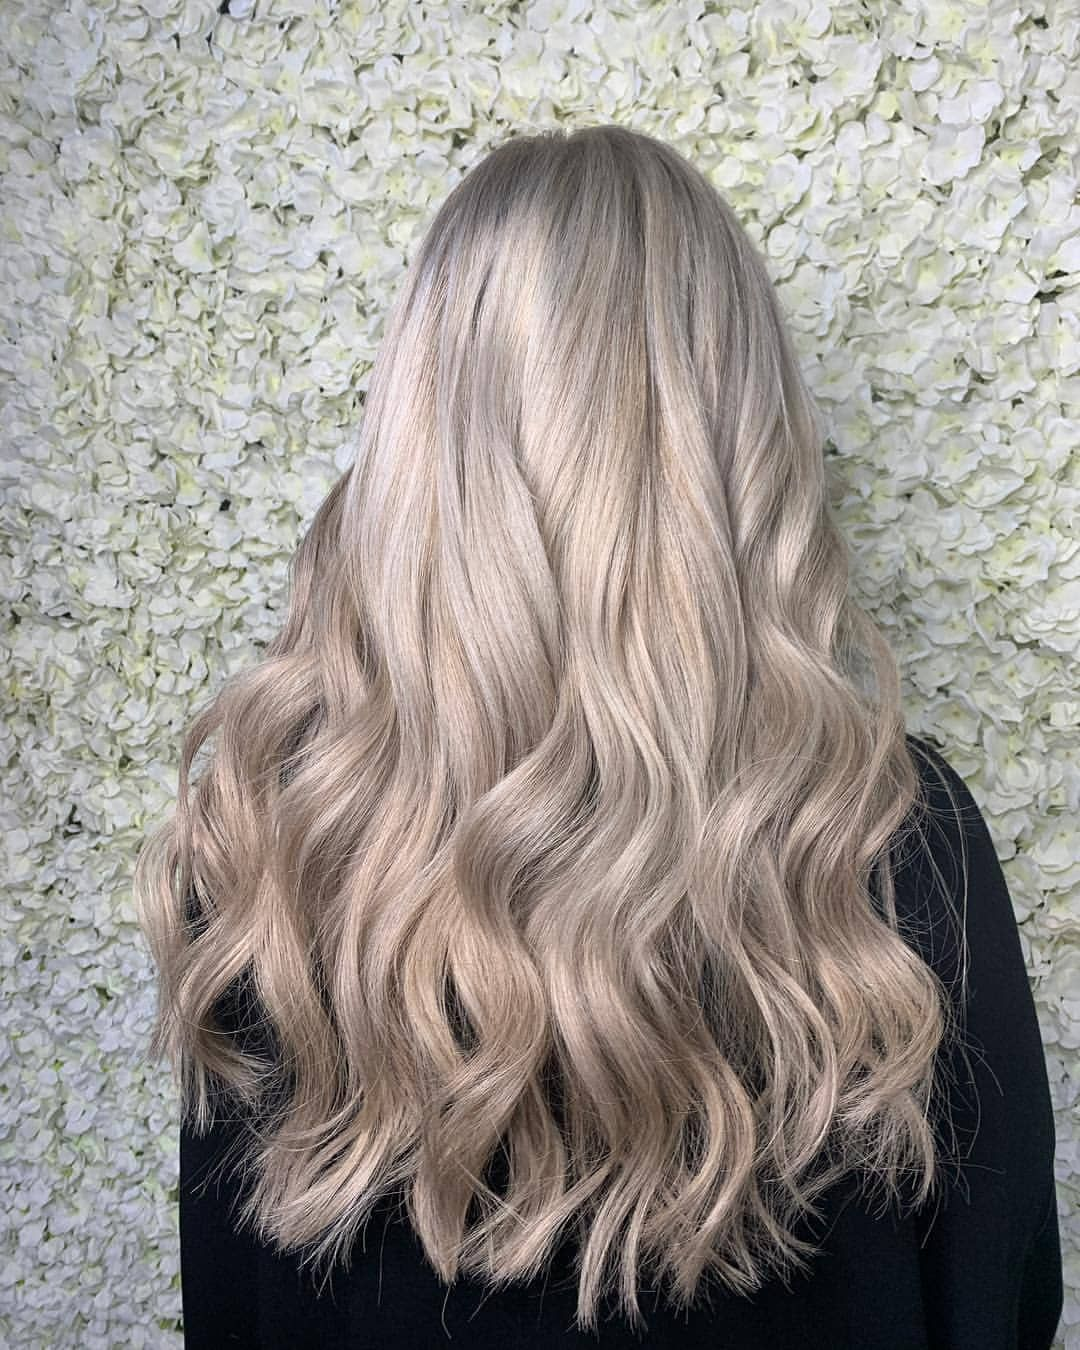 Shade Viking Blonde Beauty Works Hair Extensions Beauty Worksonline Instagram Photos And Videos Beauty Works Hair Extensions Beauty Works Blonde Beauty